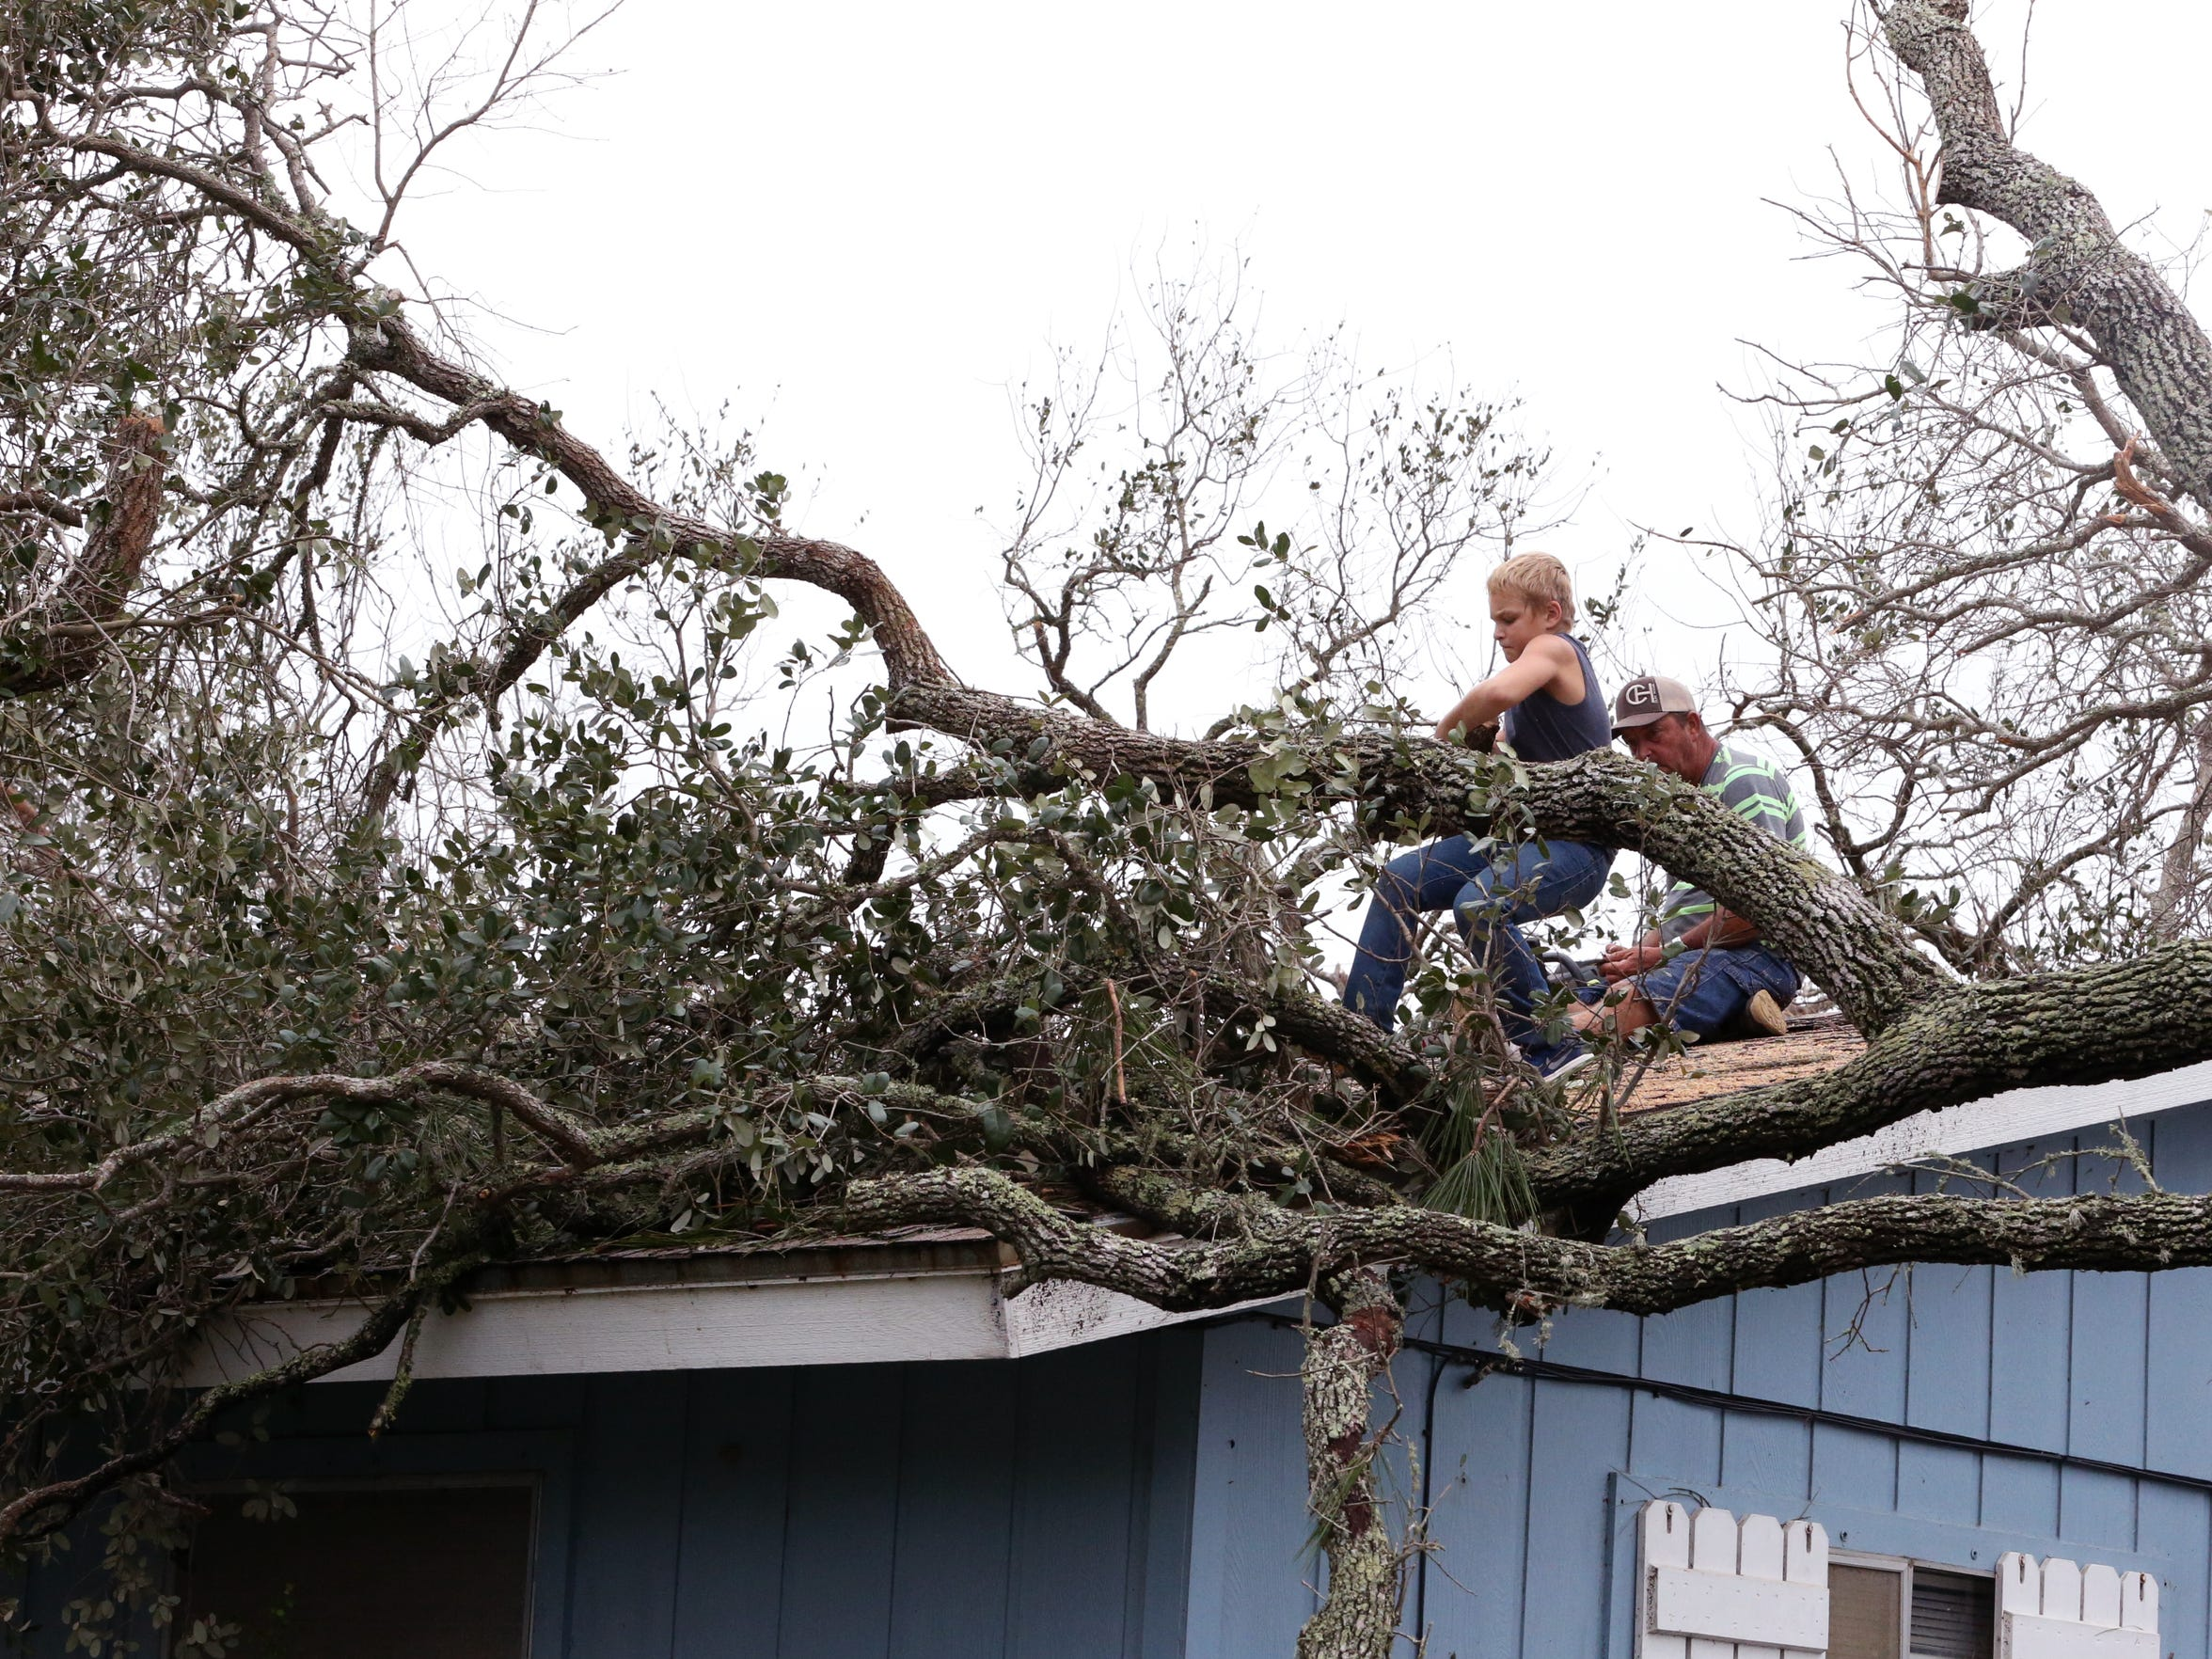 Cainan Ayers, 11, helps his grandfather, Cliffton Padier, remove a tree from their roof in Rockport, TX, on Sunday, August 27, 2017, two days after Hurricane Harvey devastated the Coastal city.